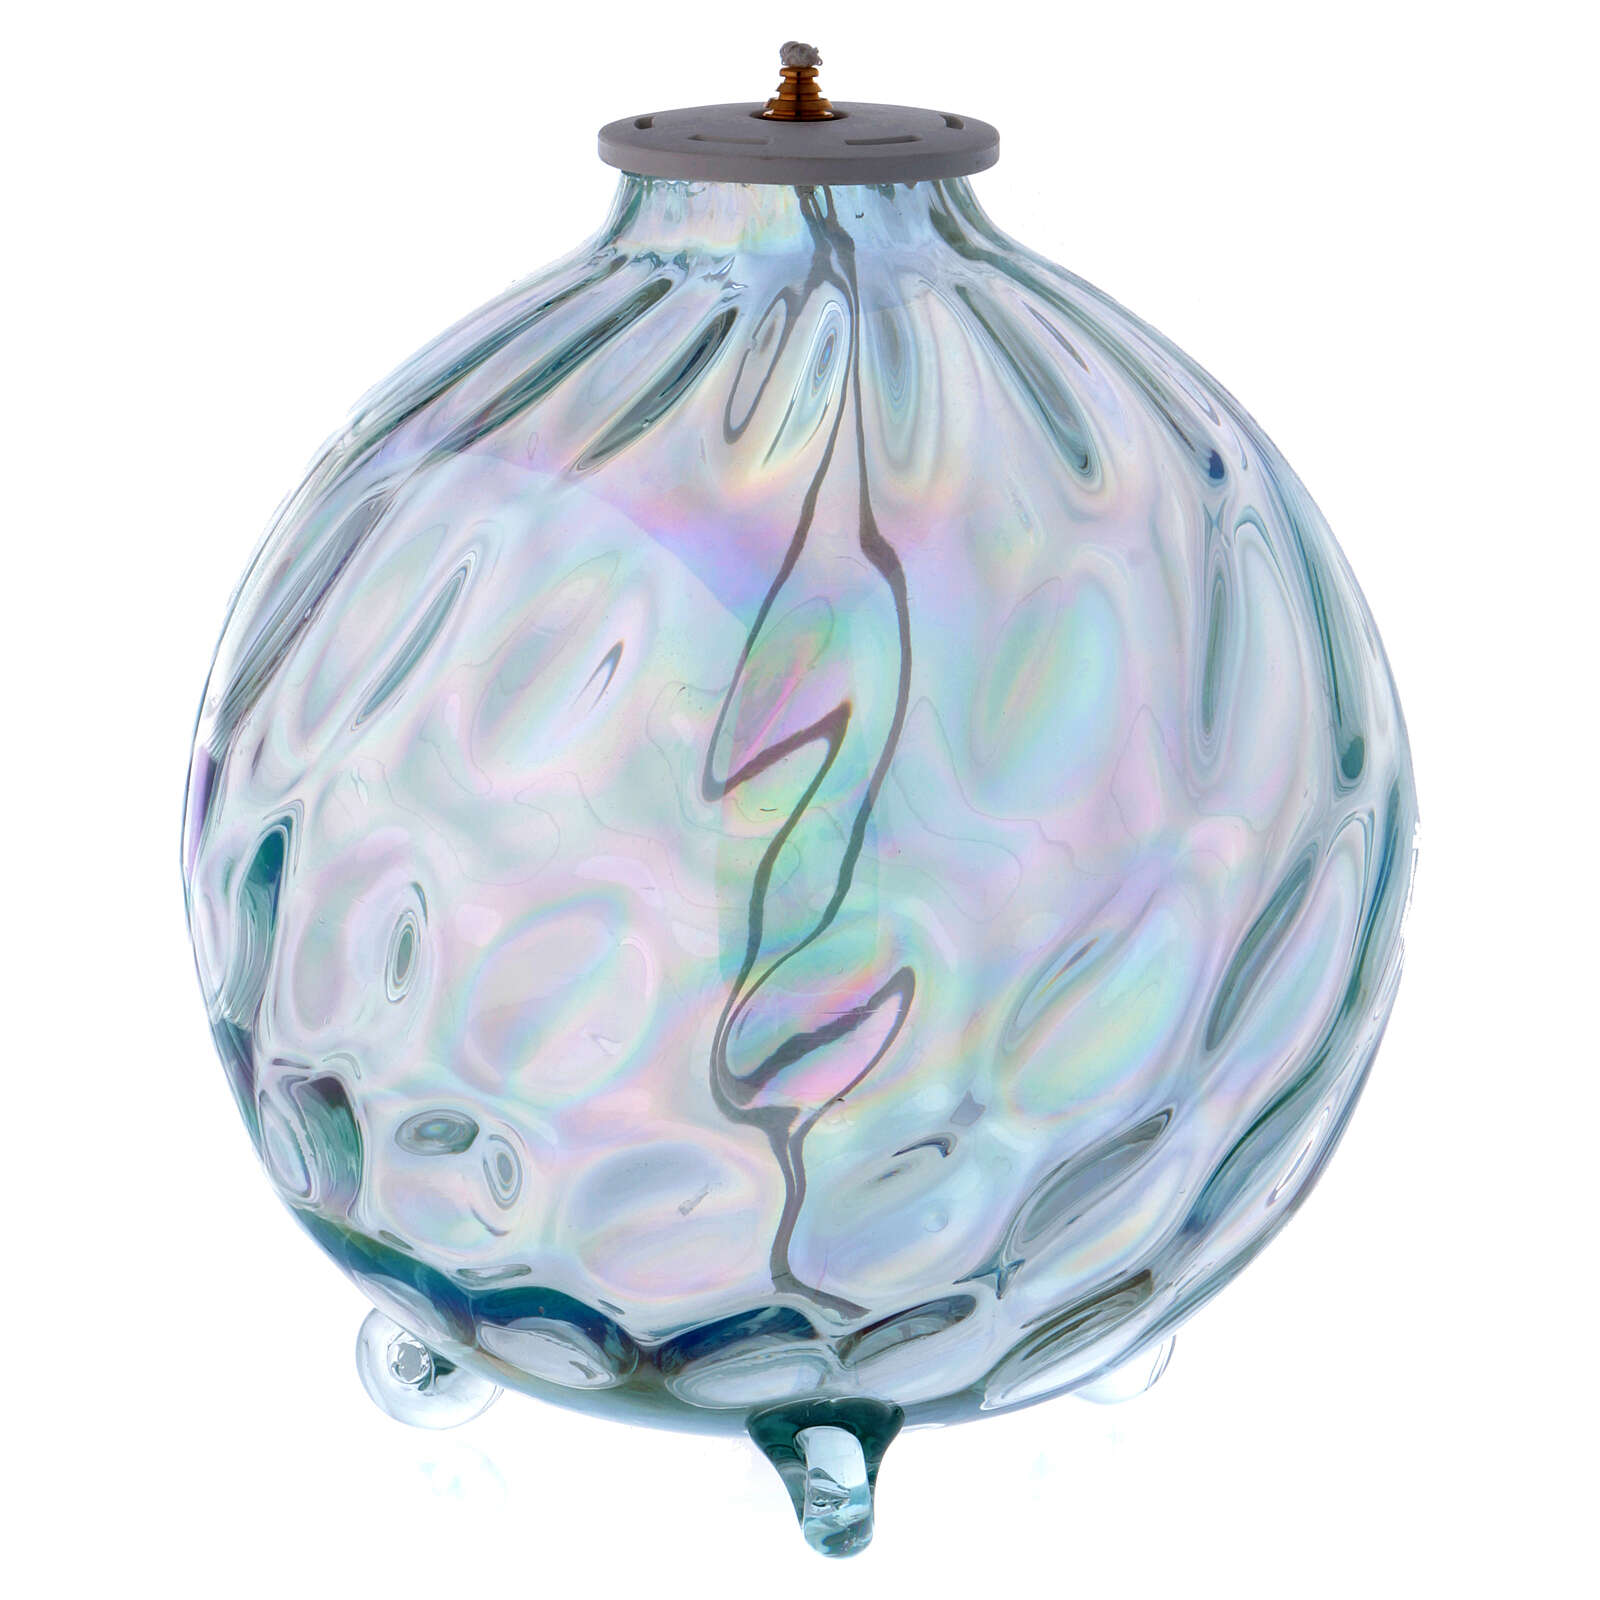 Spherical cristal lamp for liquid wax 3